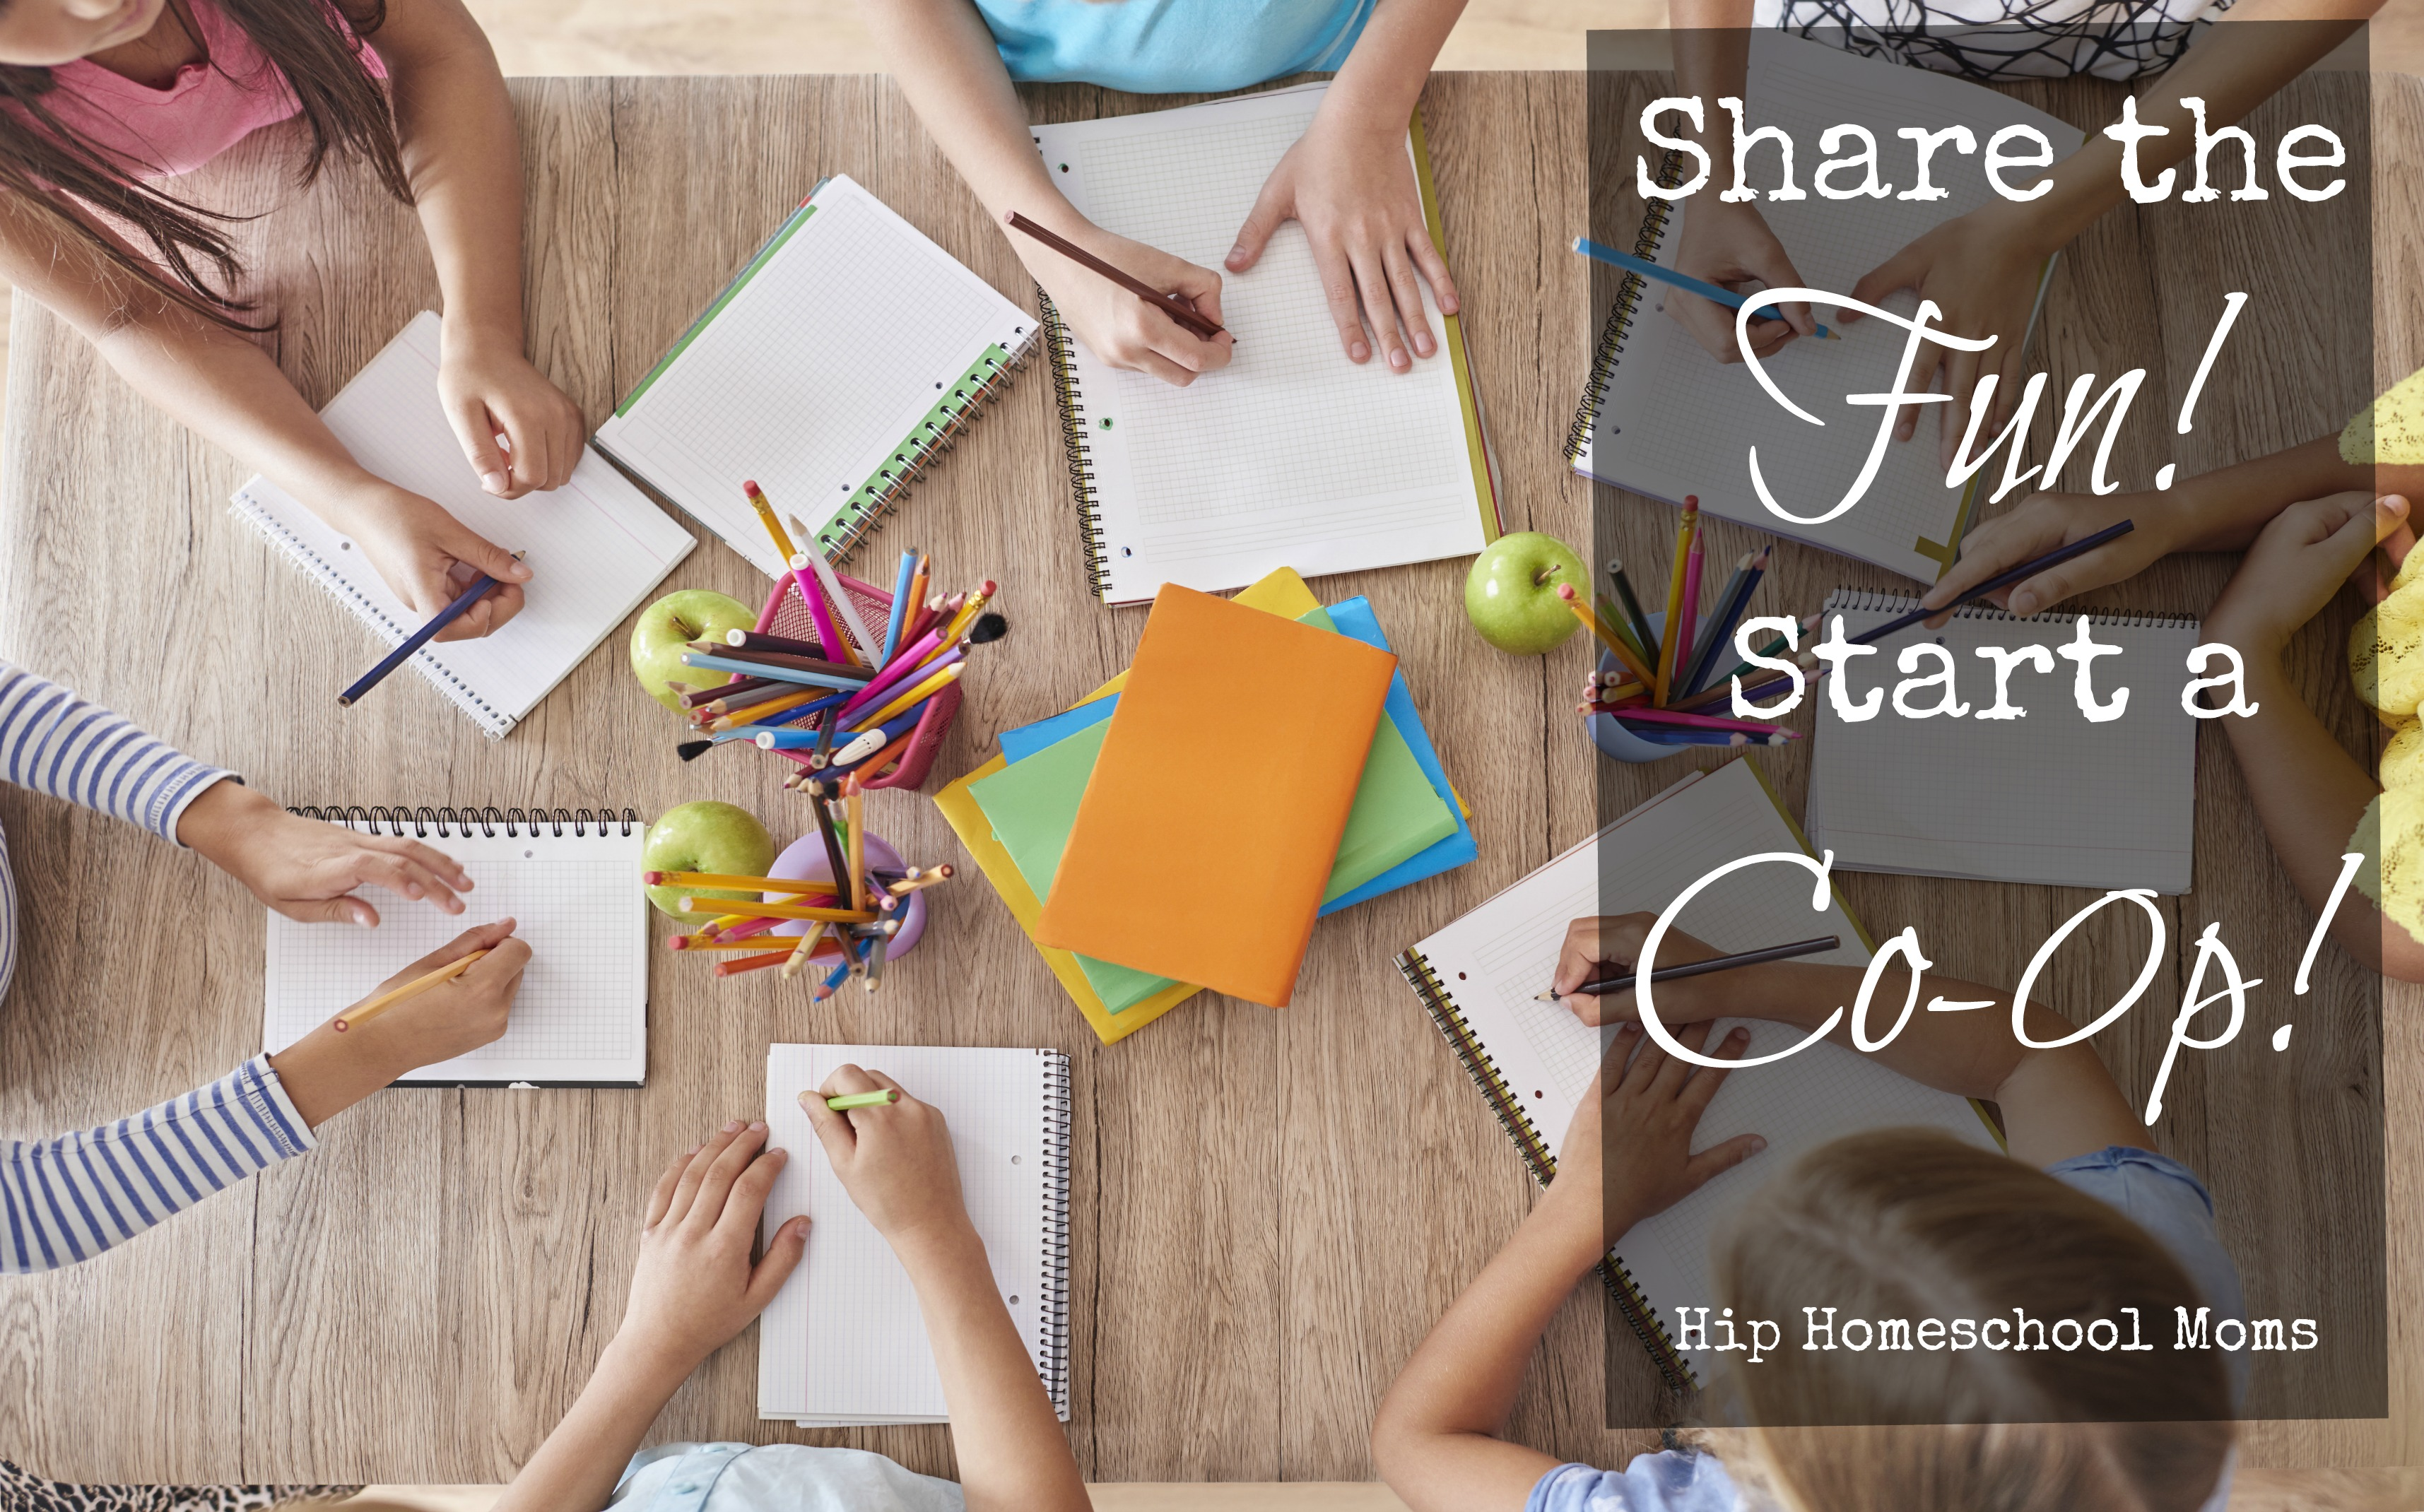 HHM Share the Fun Start a Coop